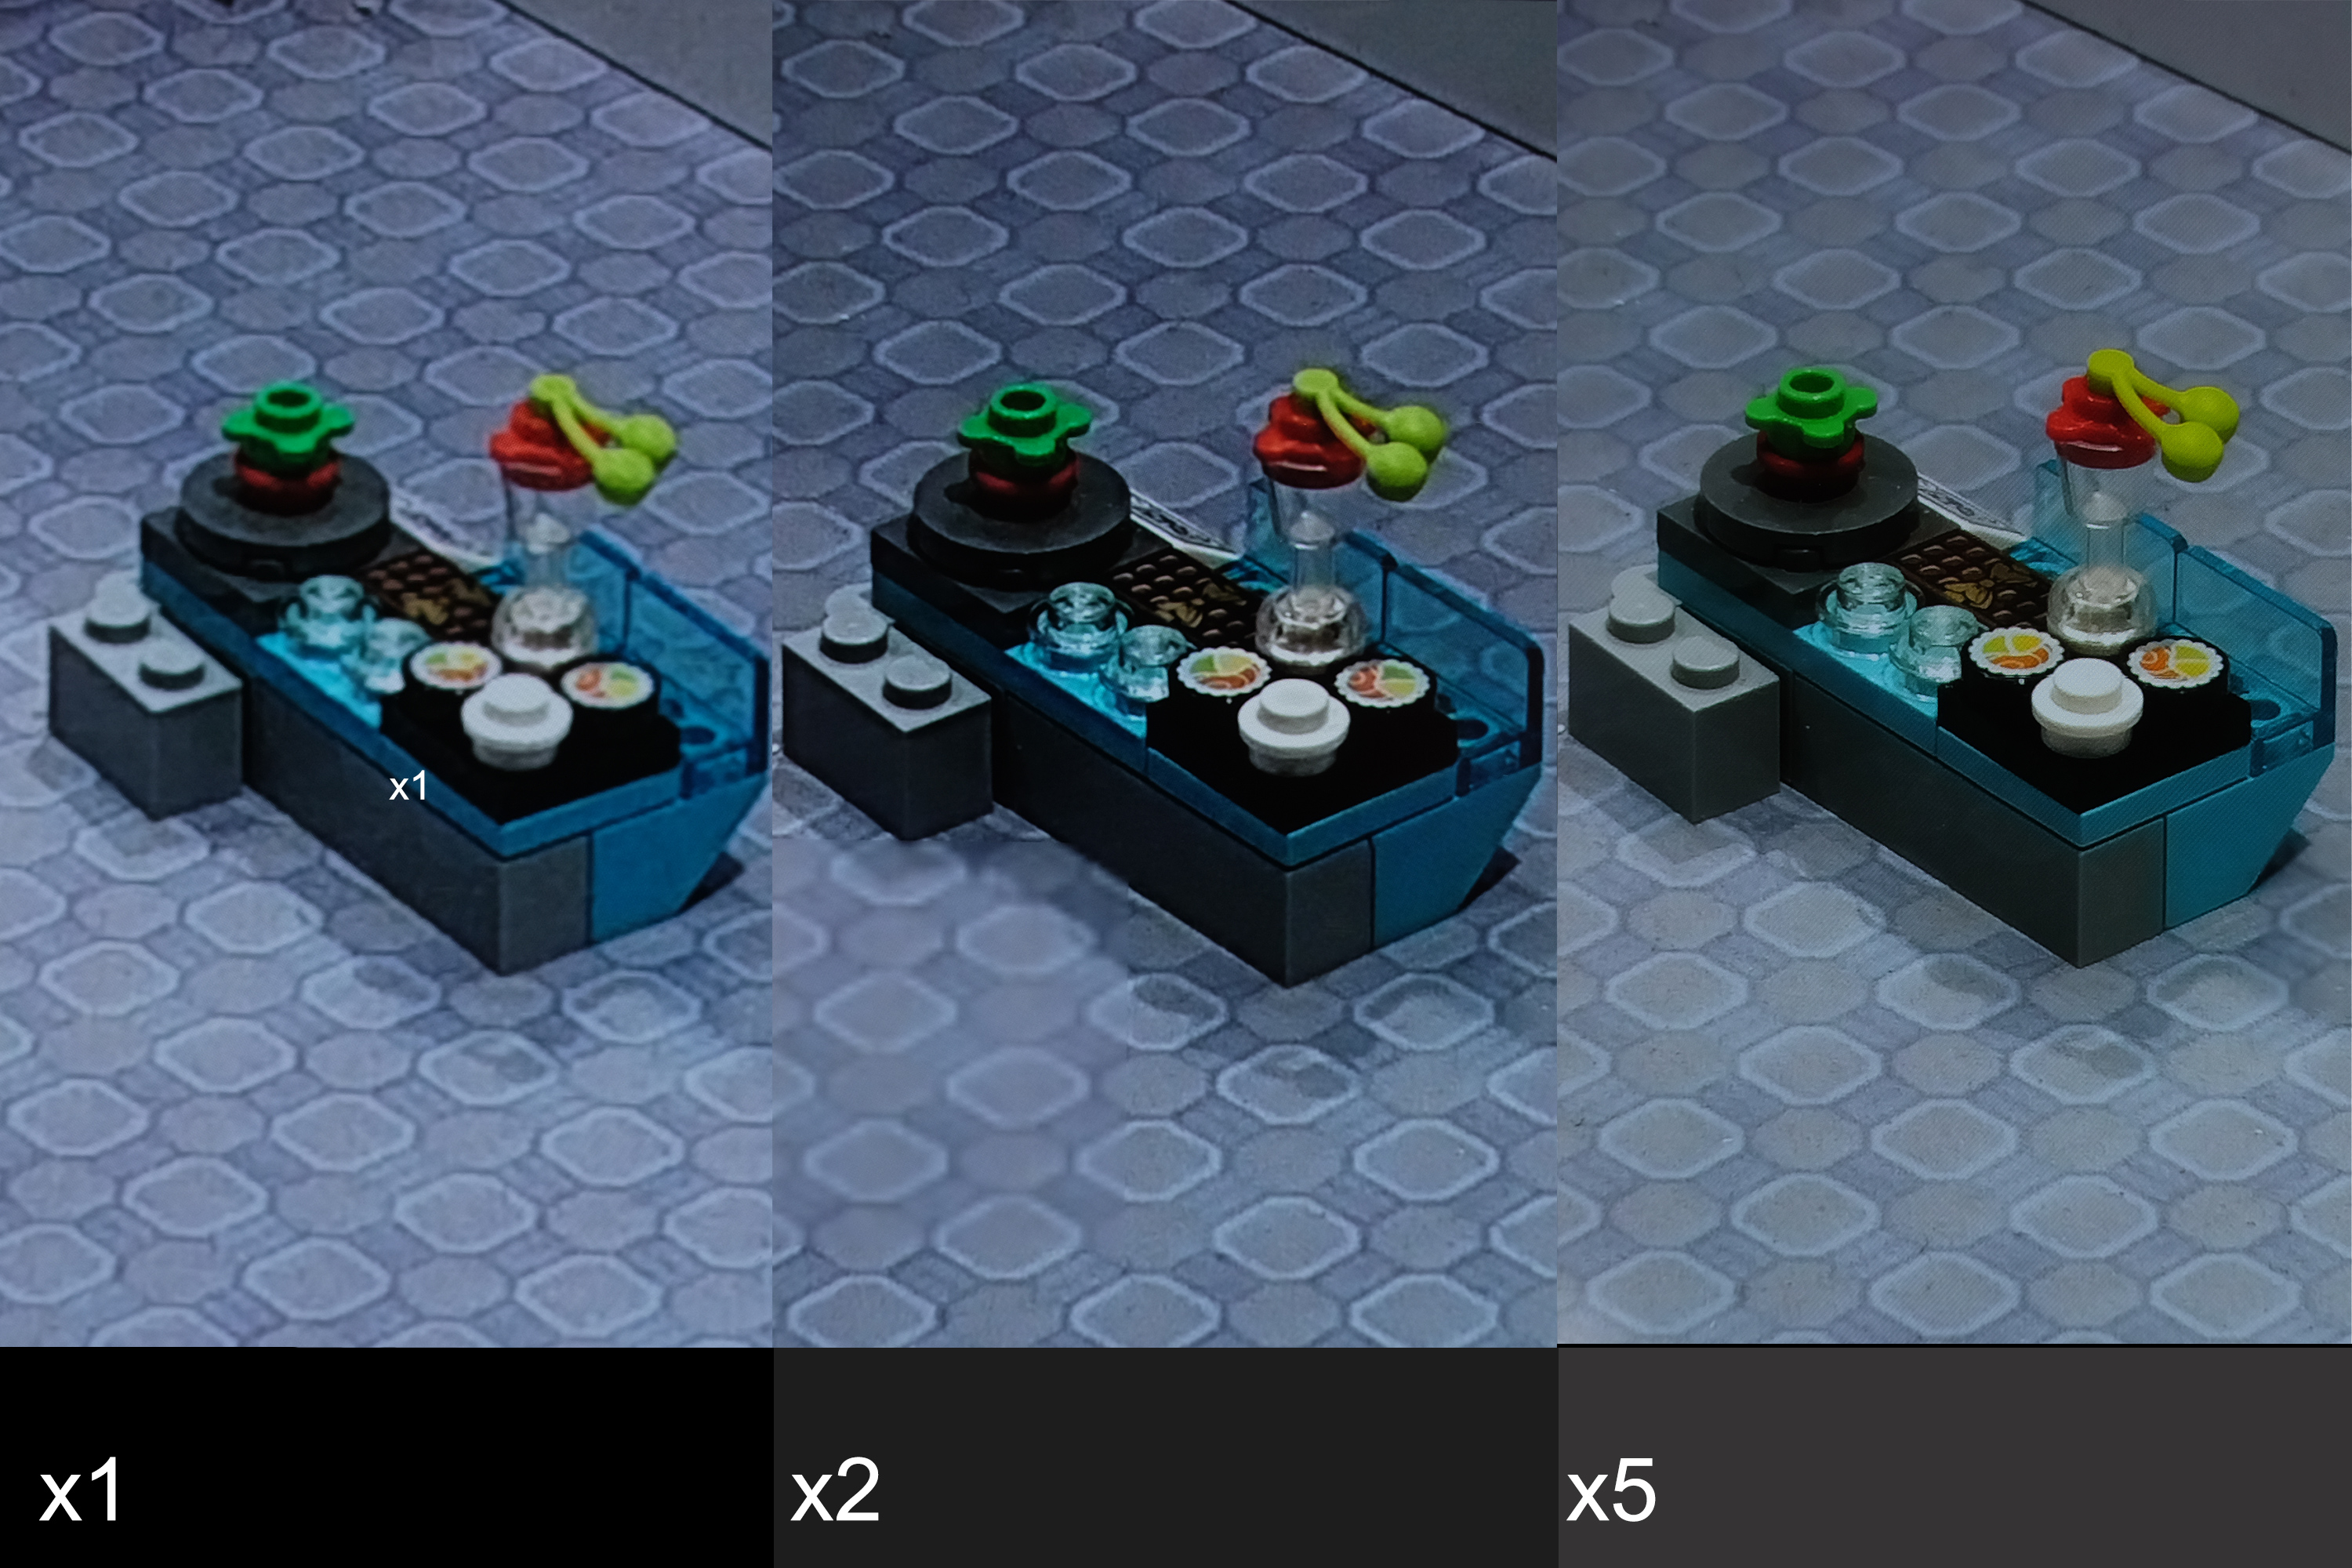 As you can see, image quality at 2x (which is computed rather than native) is a bit iffy.